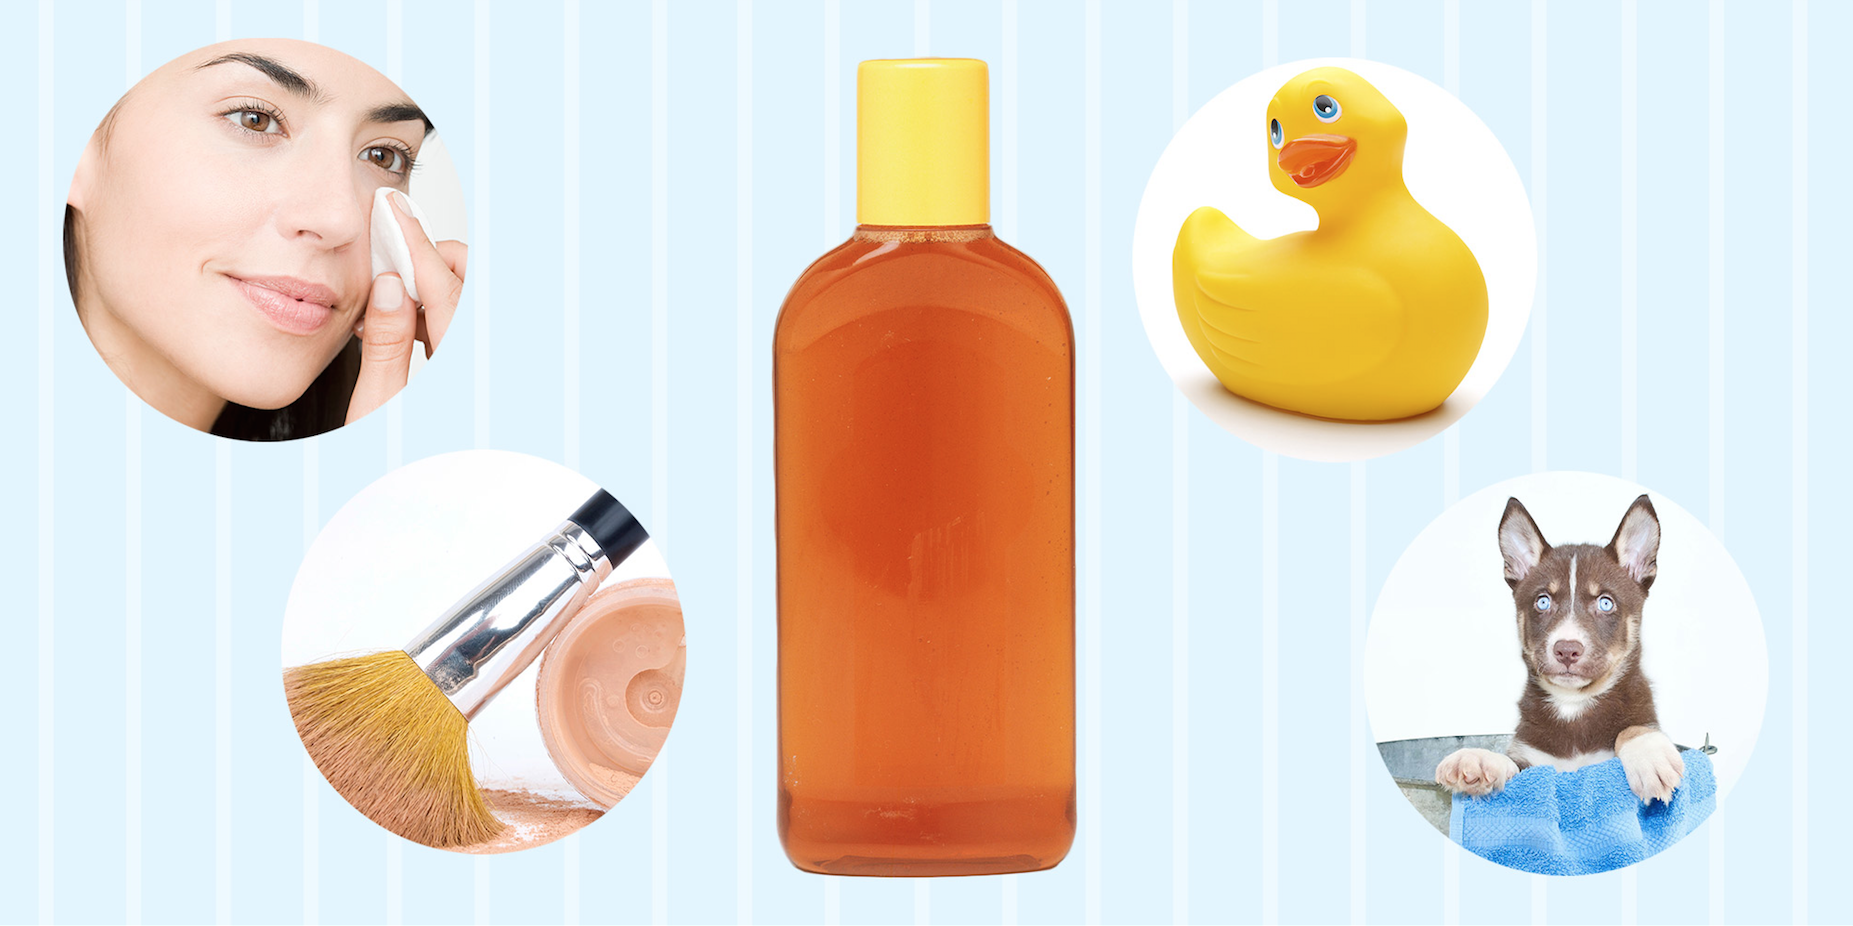 7 Genius Everyday Uses For Baby Shampoo